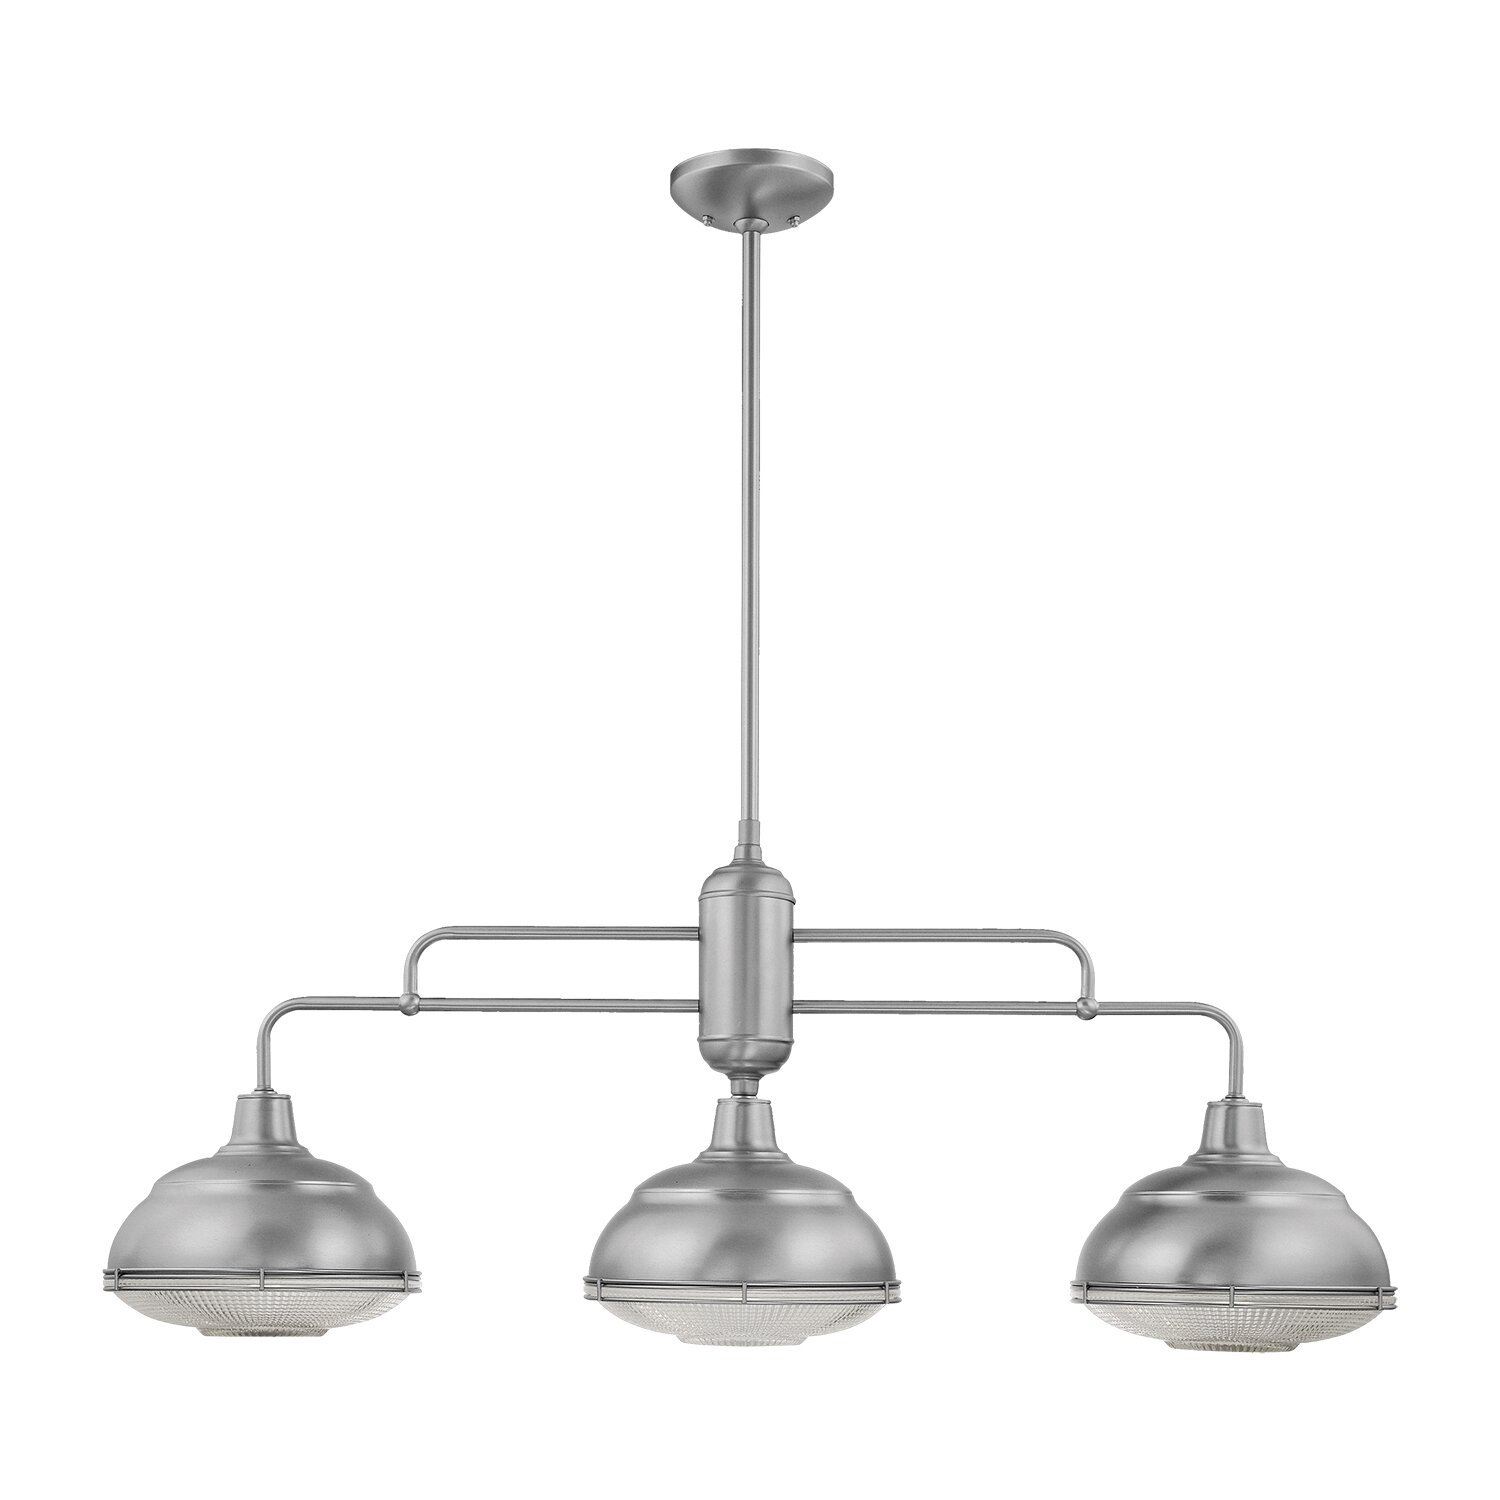 Bruges 3-Light Kitchen Island Dome Pendant in Martinique 3-Light Kitchen Island Dome Pendants (Image 5 of 30)